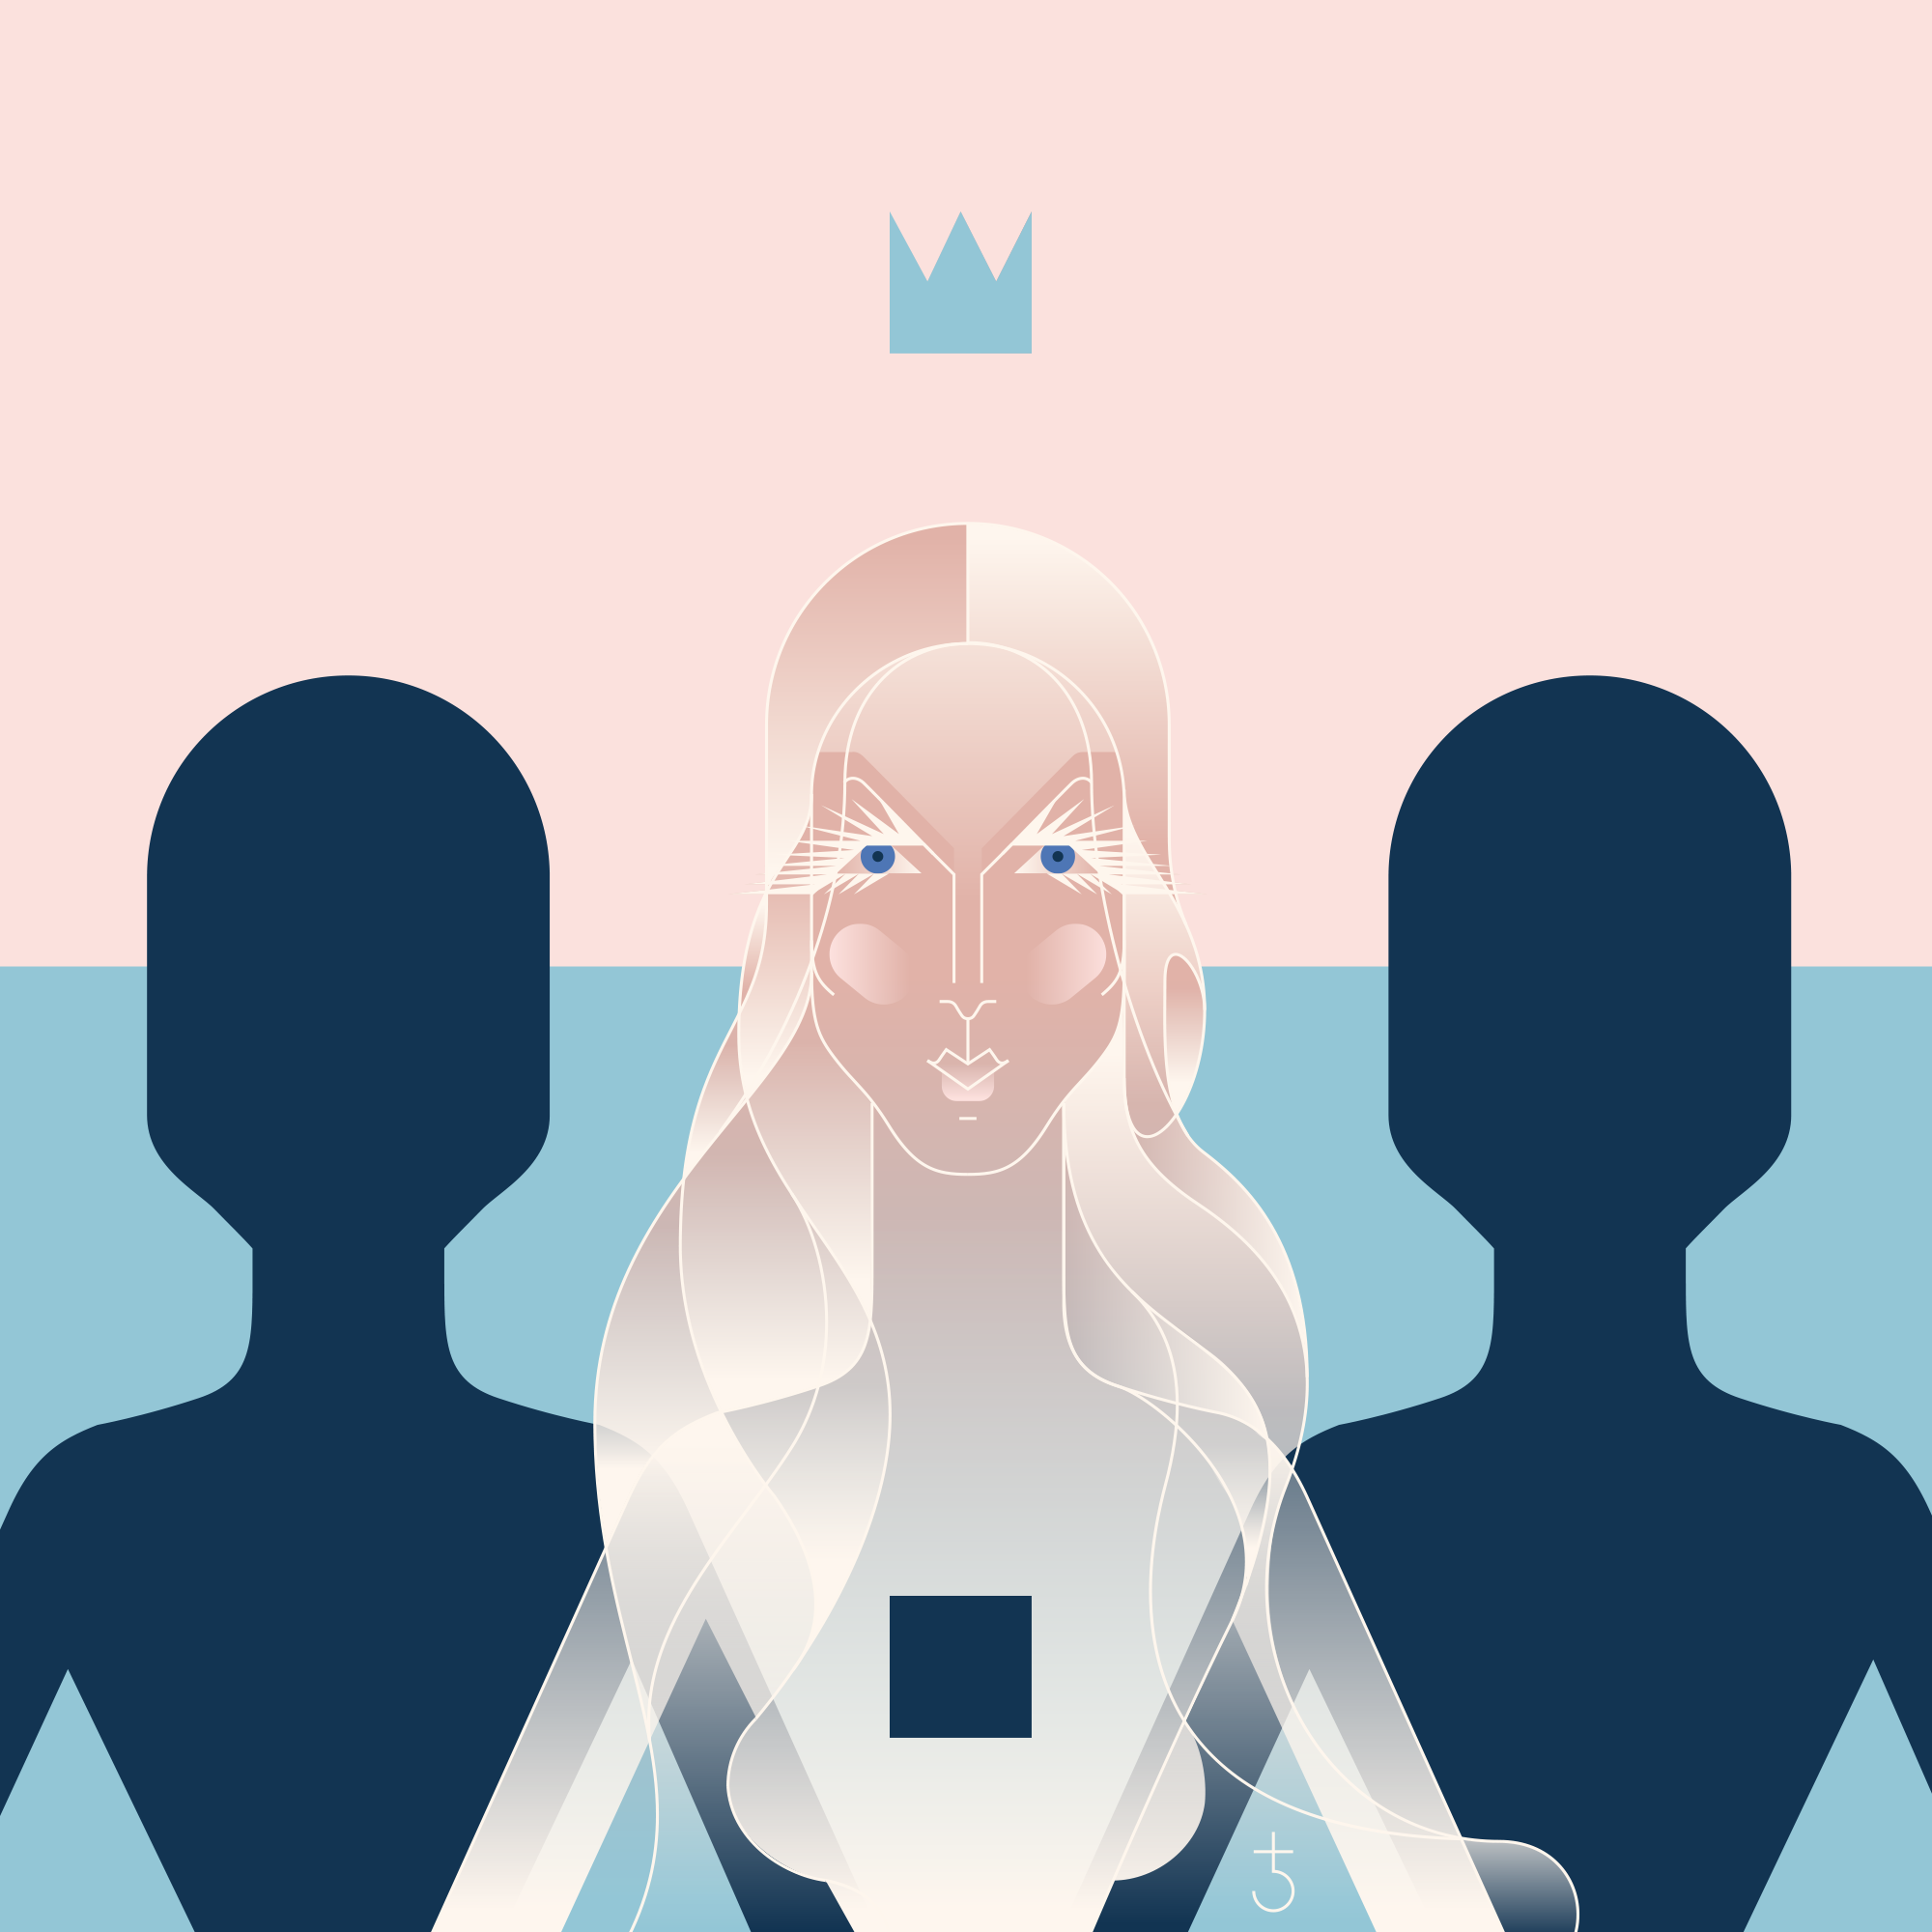 illustration_andre_levy_zhion_vector_alternative_music_ionnalee_iamamiwhoami_portrait_tribute_fanart.png